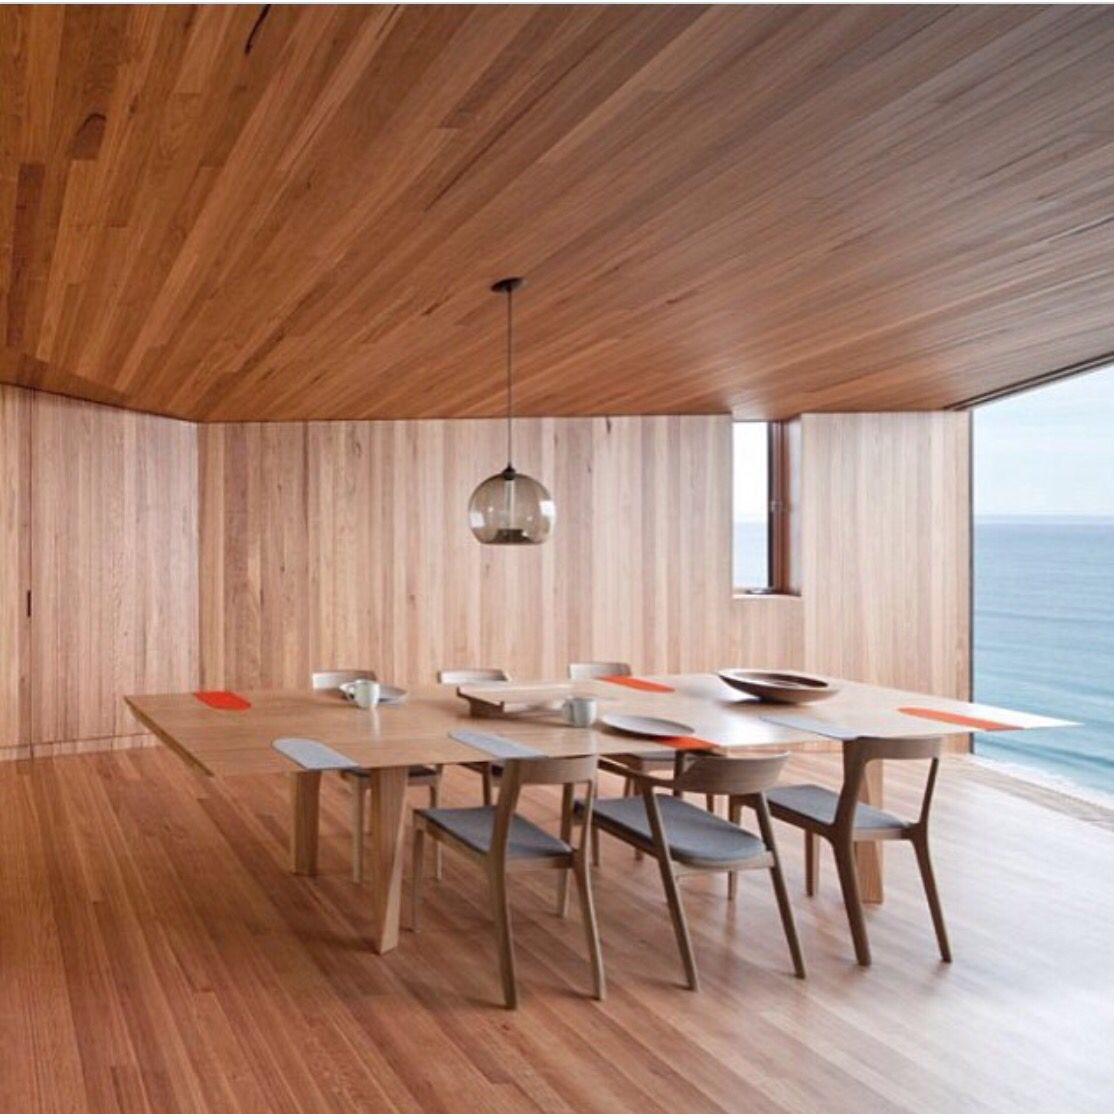 Fair haven (With images) | Interior design awards ...